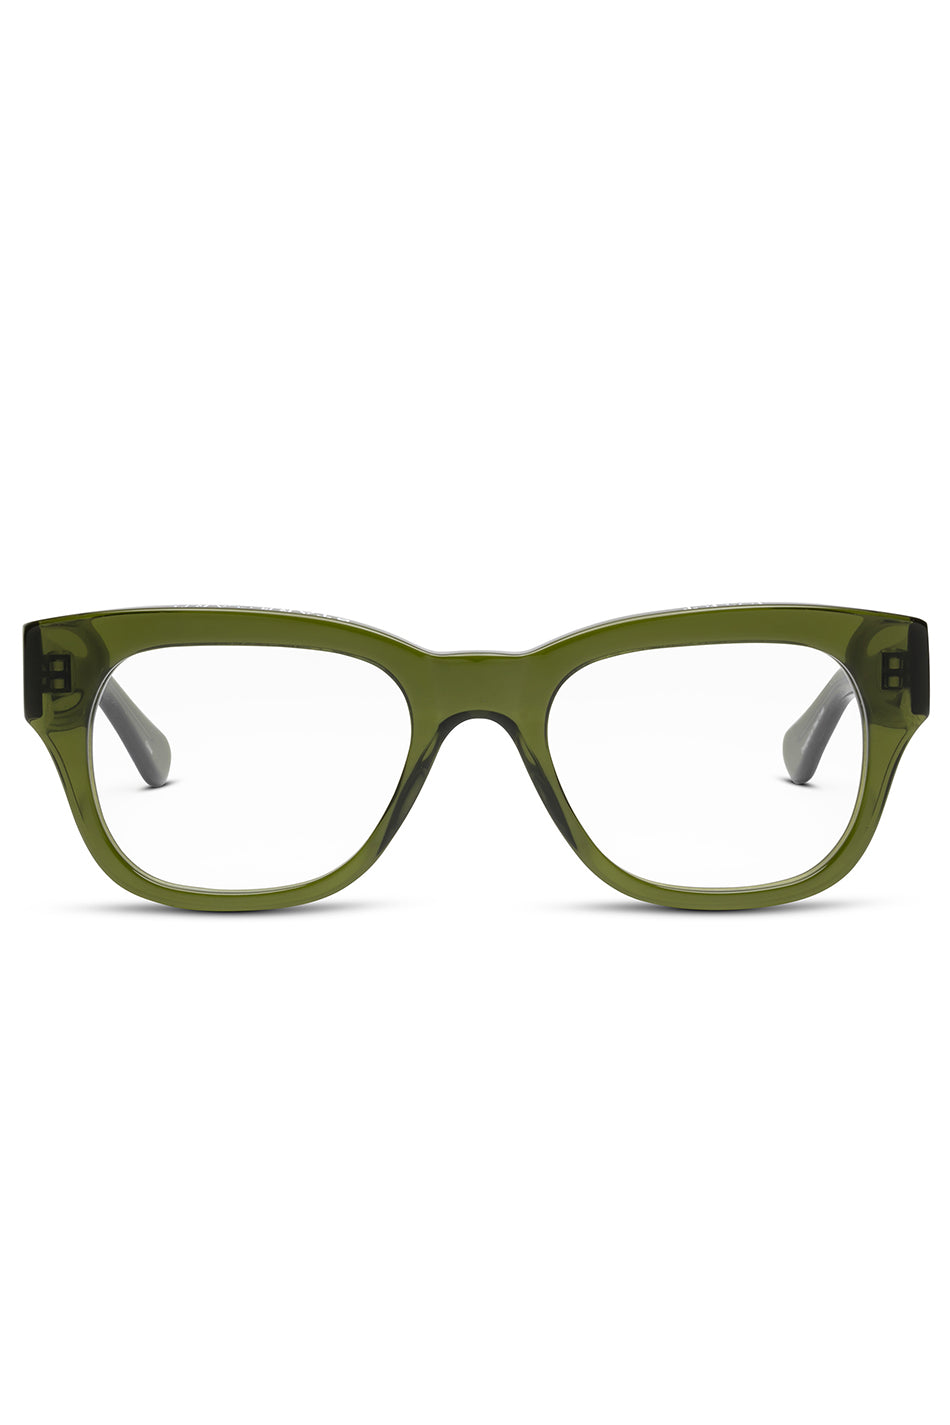 CADDIS - MIKLOS reader glasses, heritage green